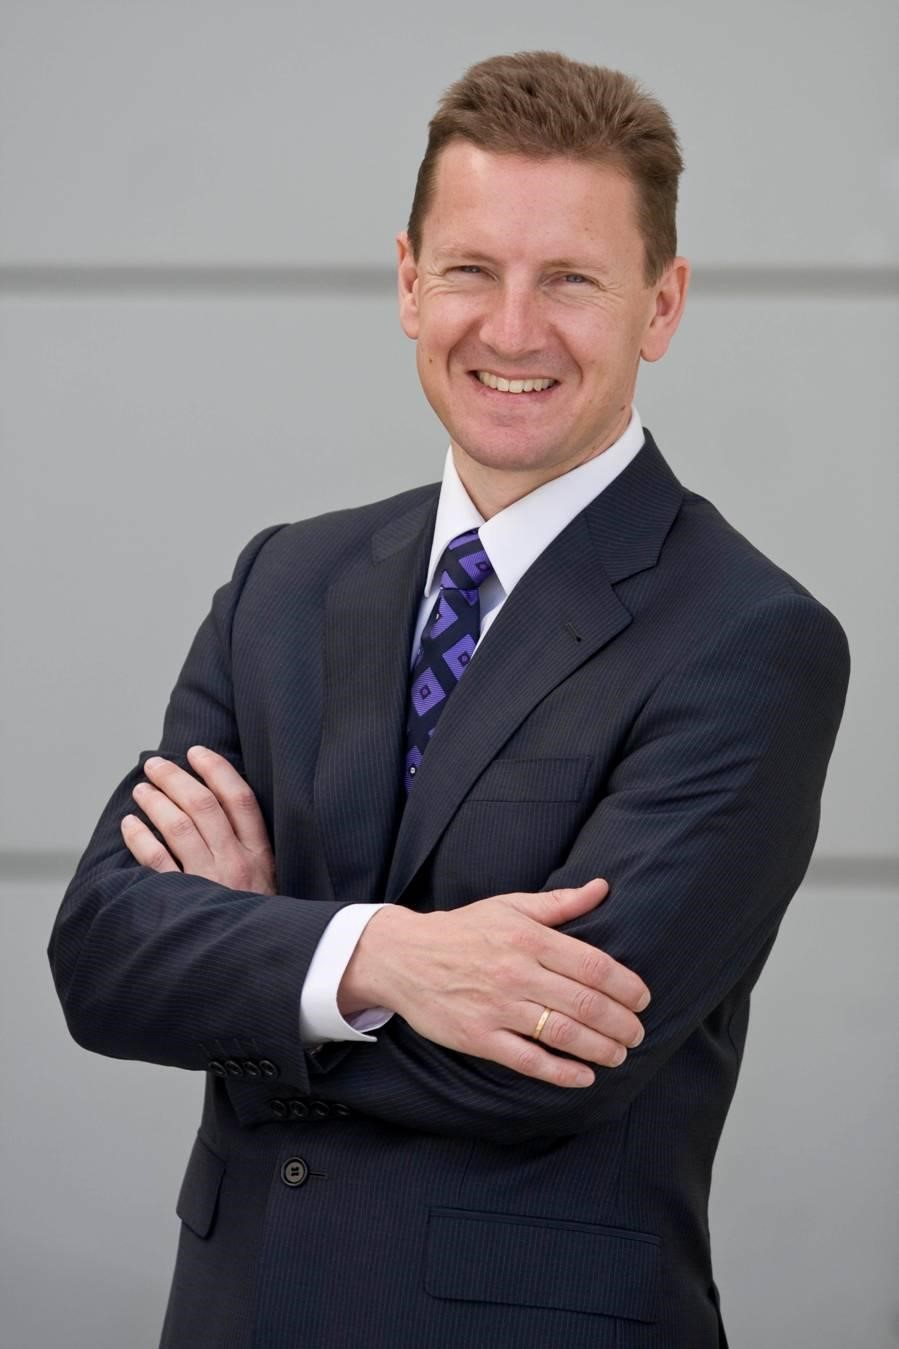 Photo of man in suit